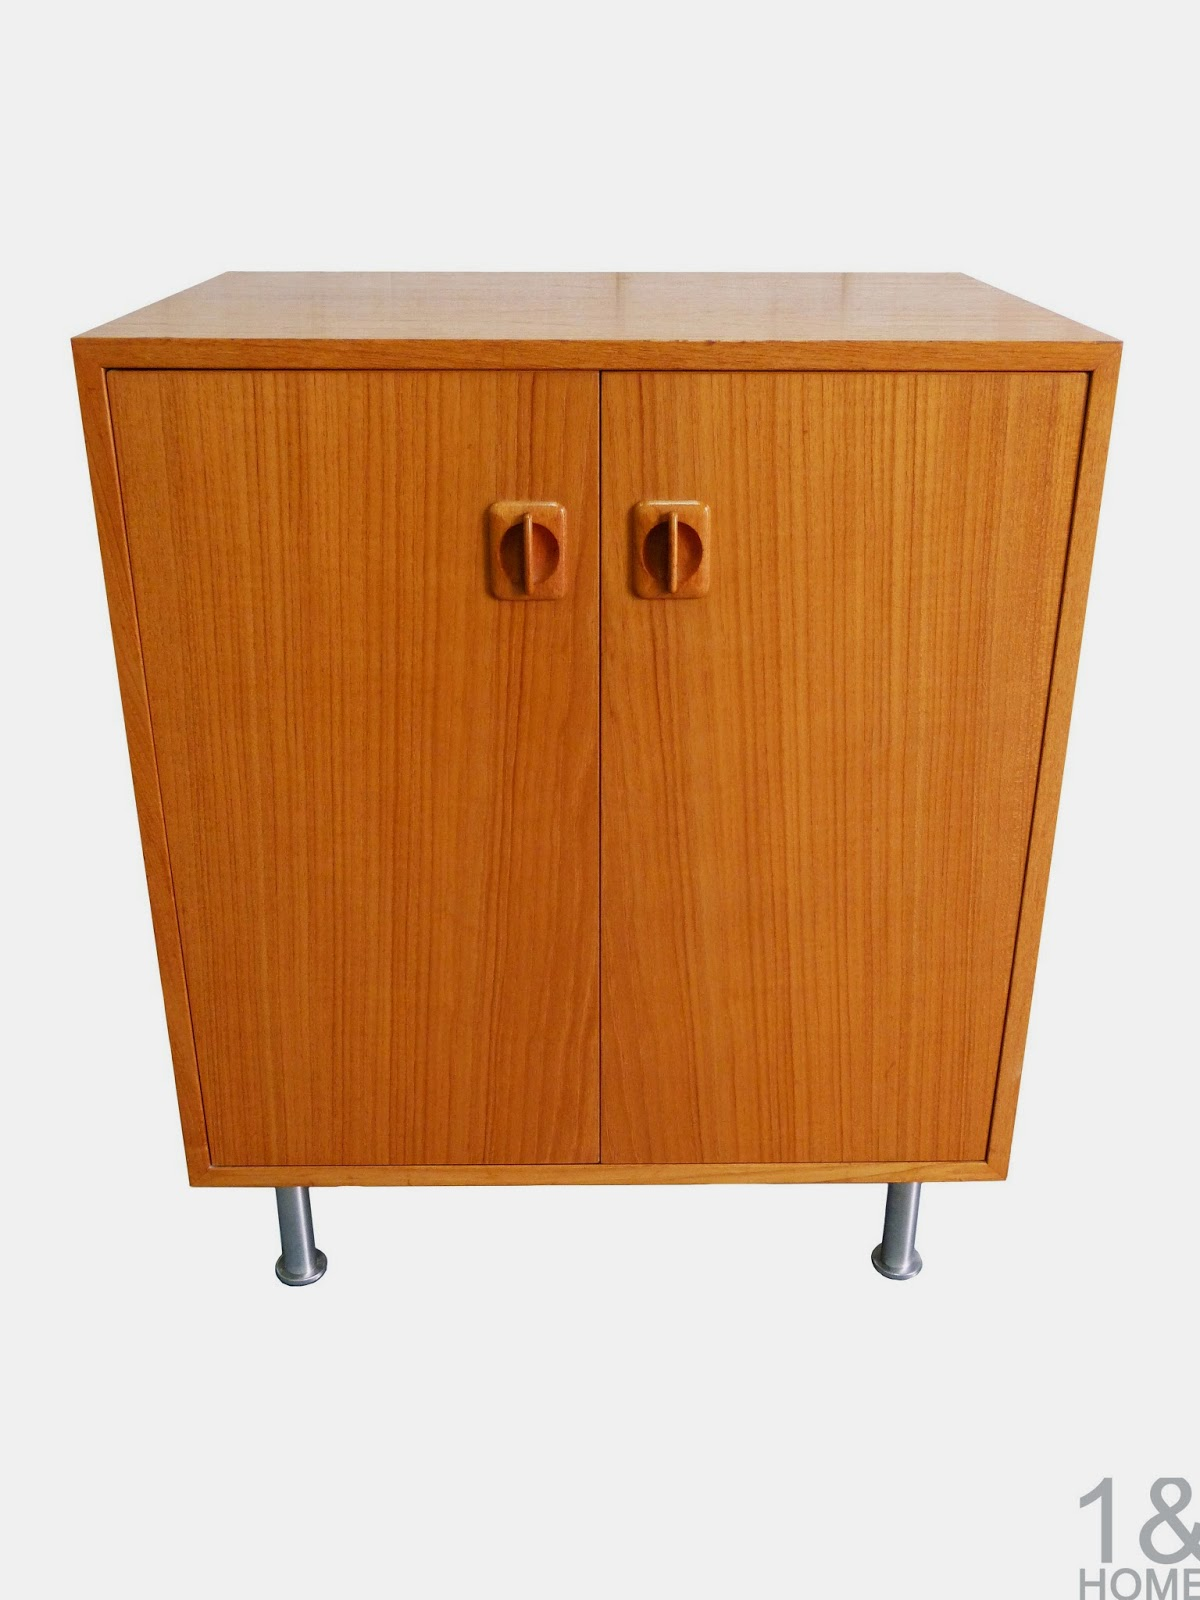 Danish Modern Teak Storage Cabinet / Side Table